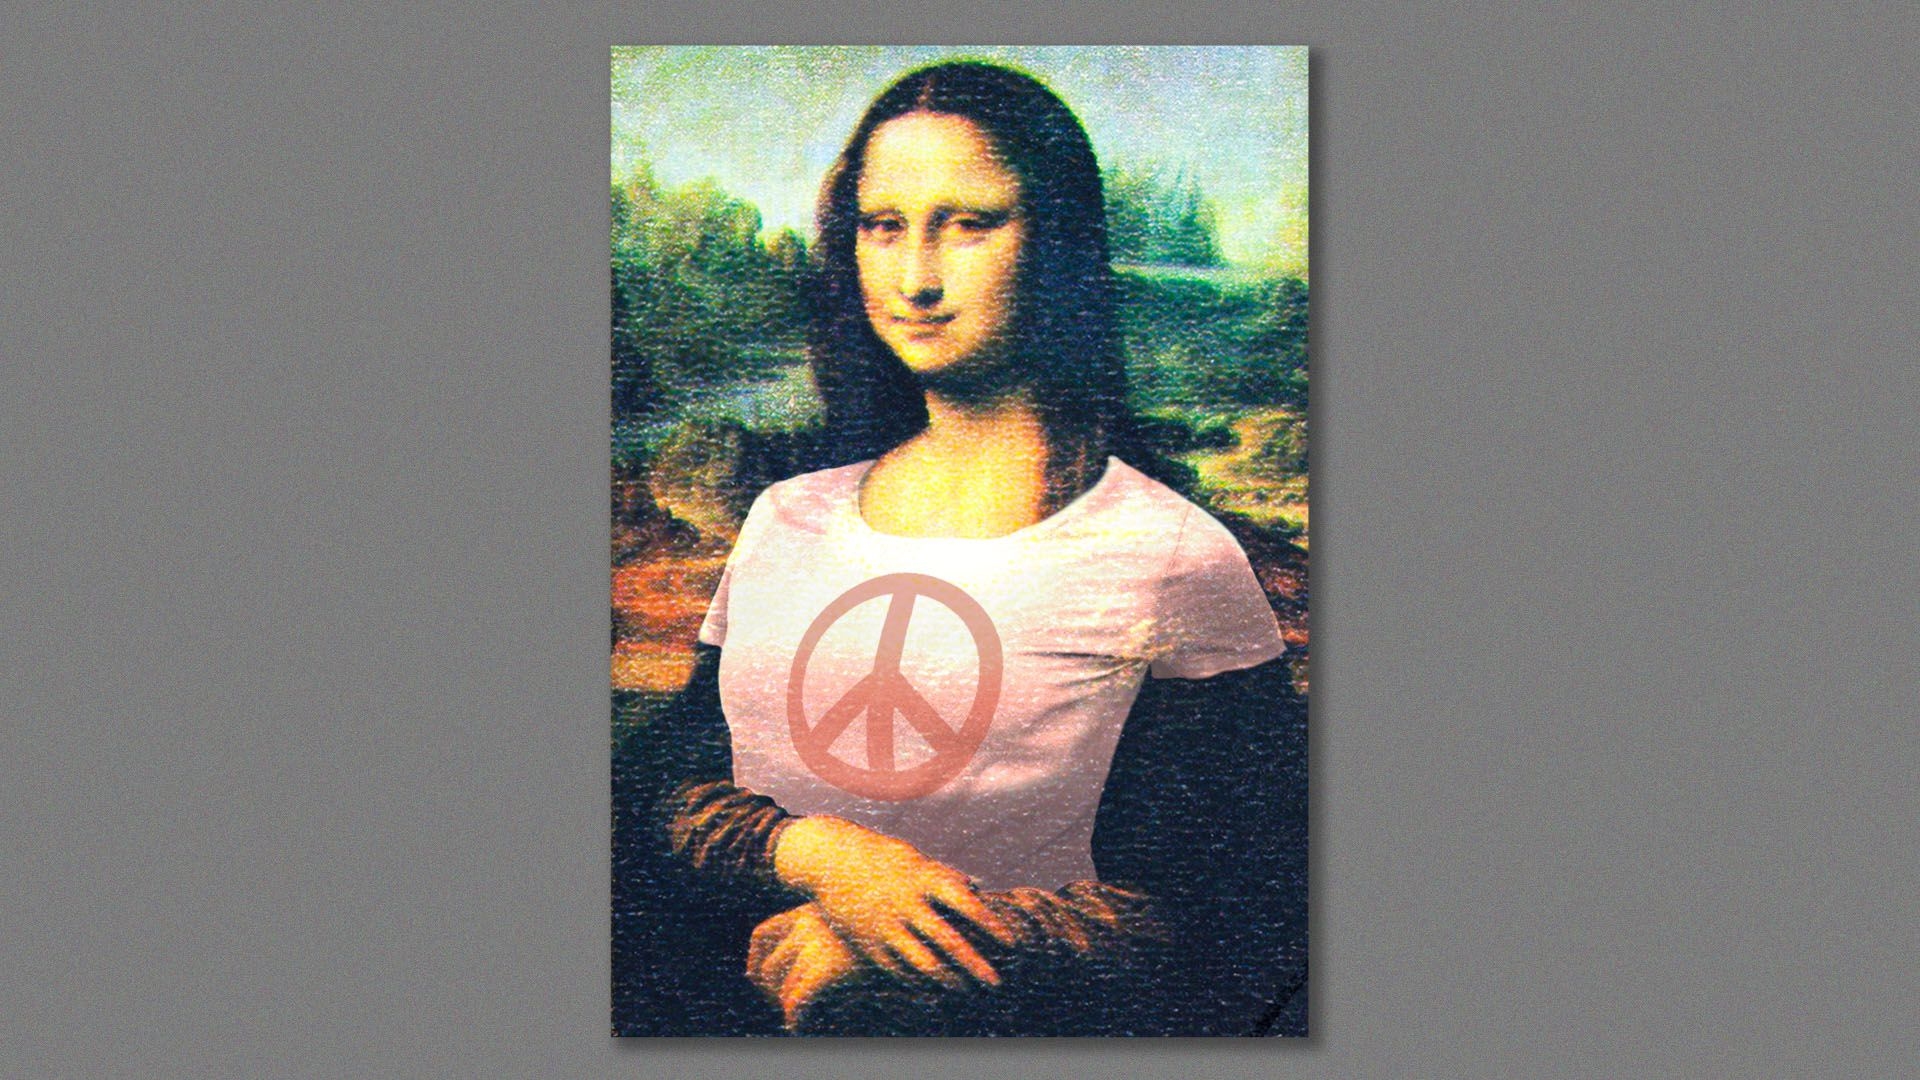 Illustration of the Mona Lisa wearing a t-shirt with a peace sign